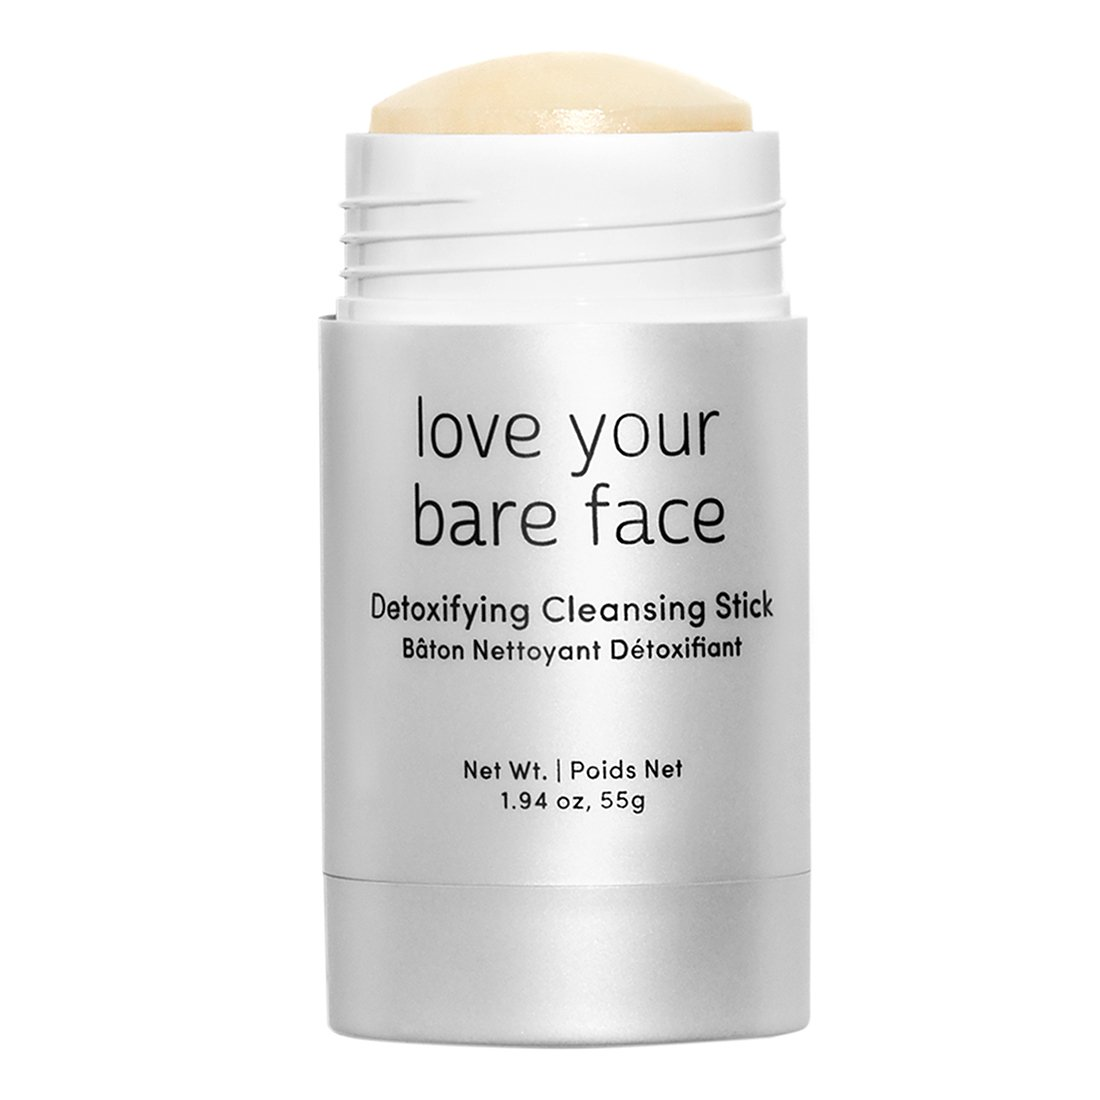 Julep Love Your Bare Face Detoxifying Cleansing Balm Stick, Exfoliating Face Wash,1.94 ounce